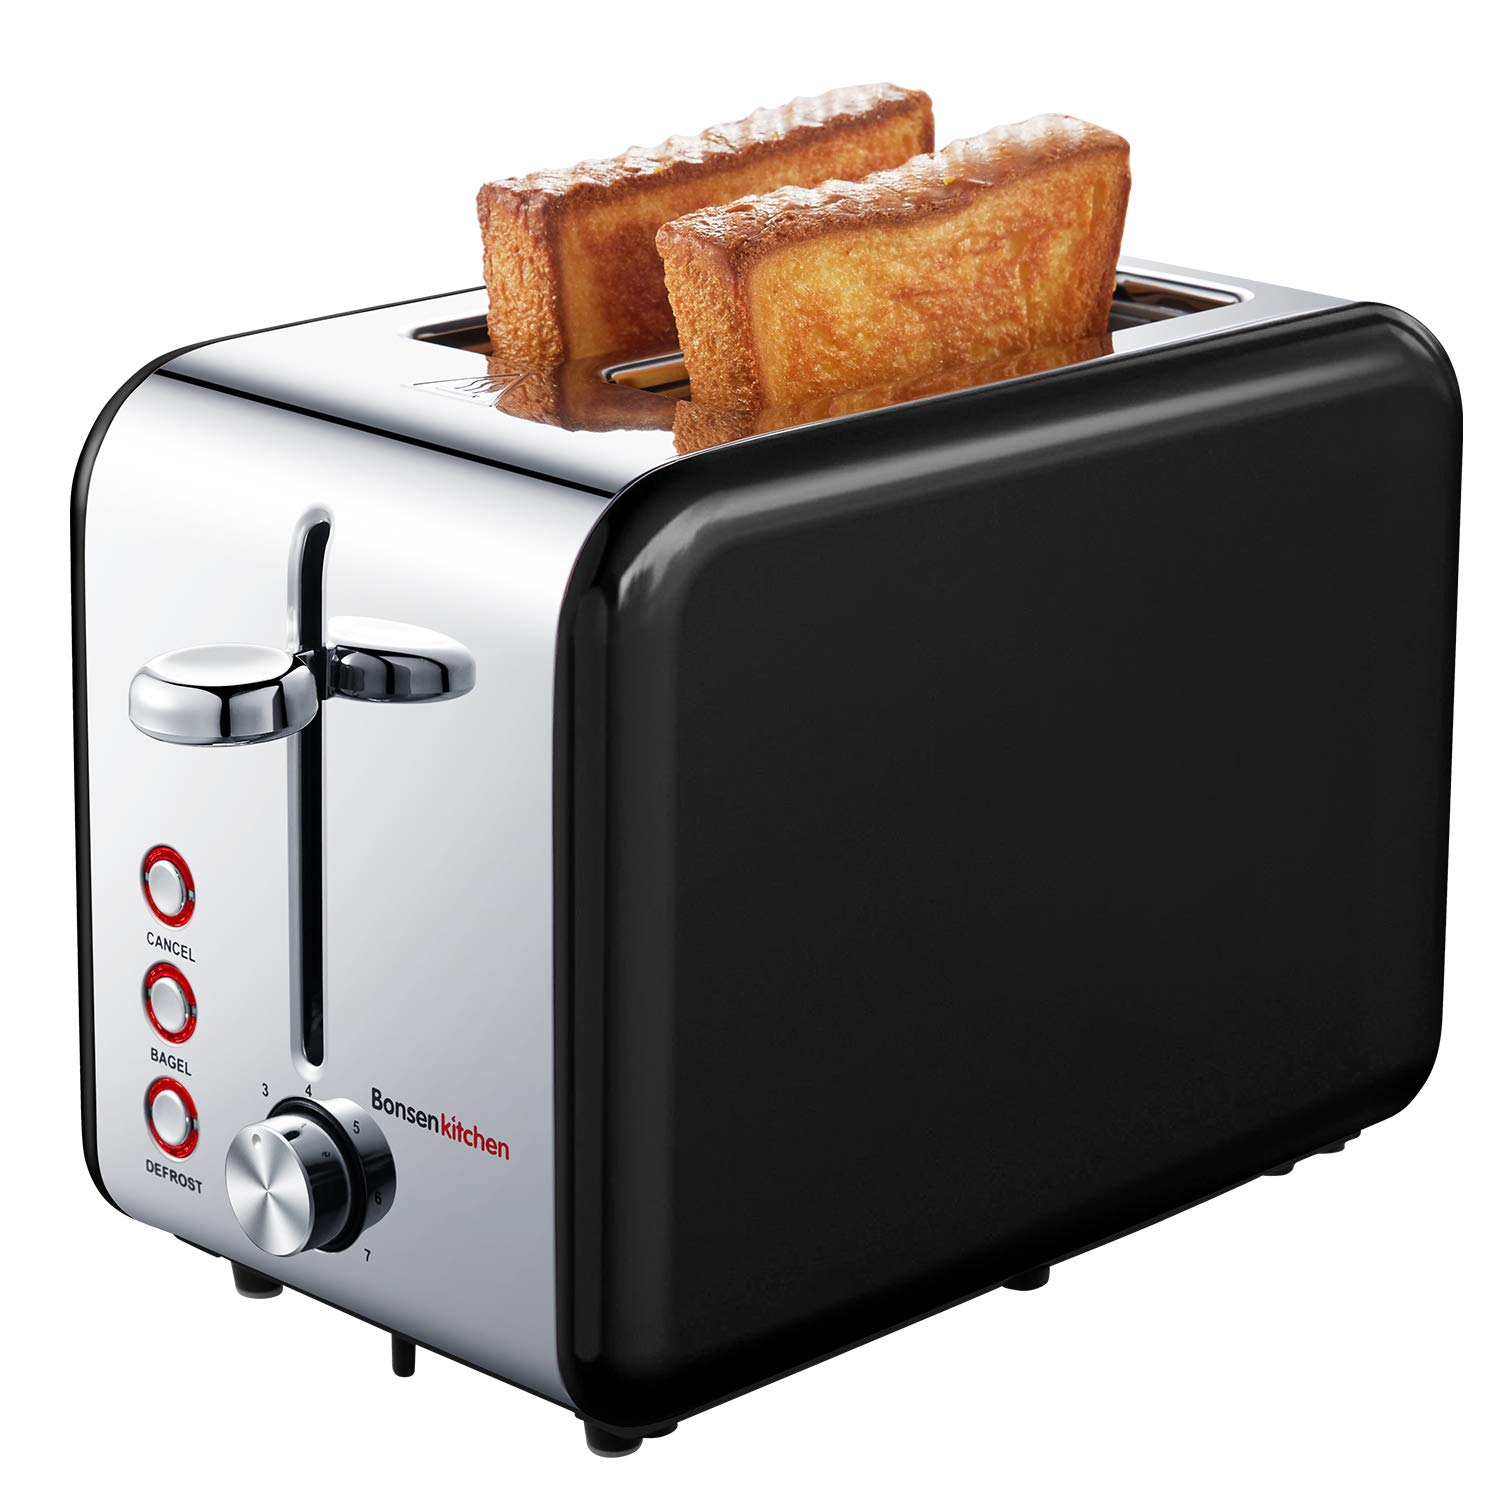 Bonsenkitchen 2-Slice Wide-Slot Toaster with Chrome Stainless Steel Housing, Defrost/Bagel/Cancel and Bread Jam Proof Function, 7 Browning Settings (Black)